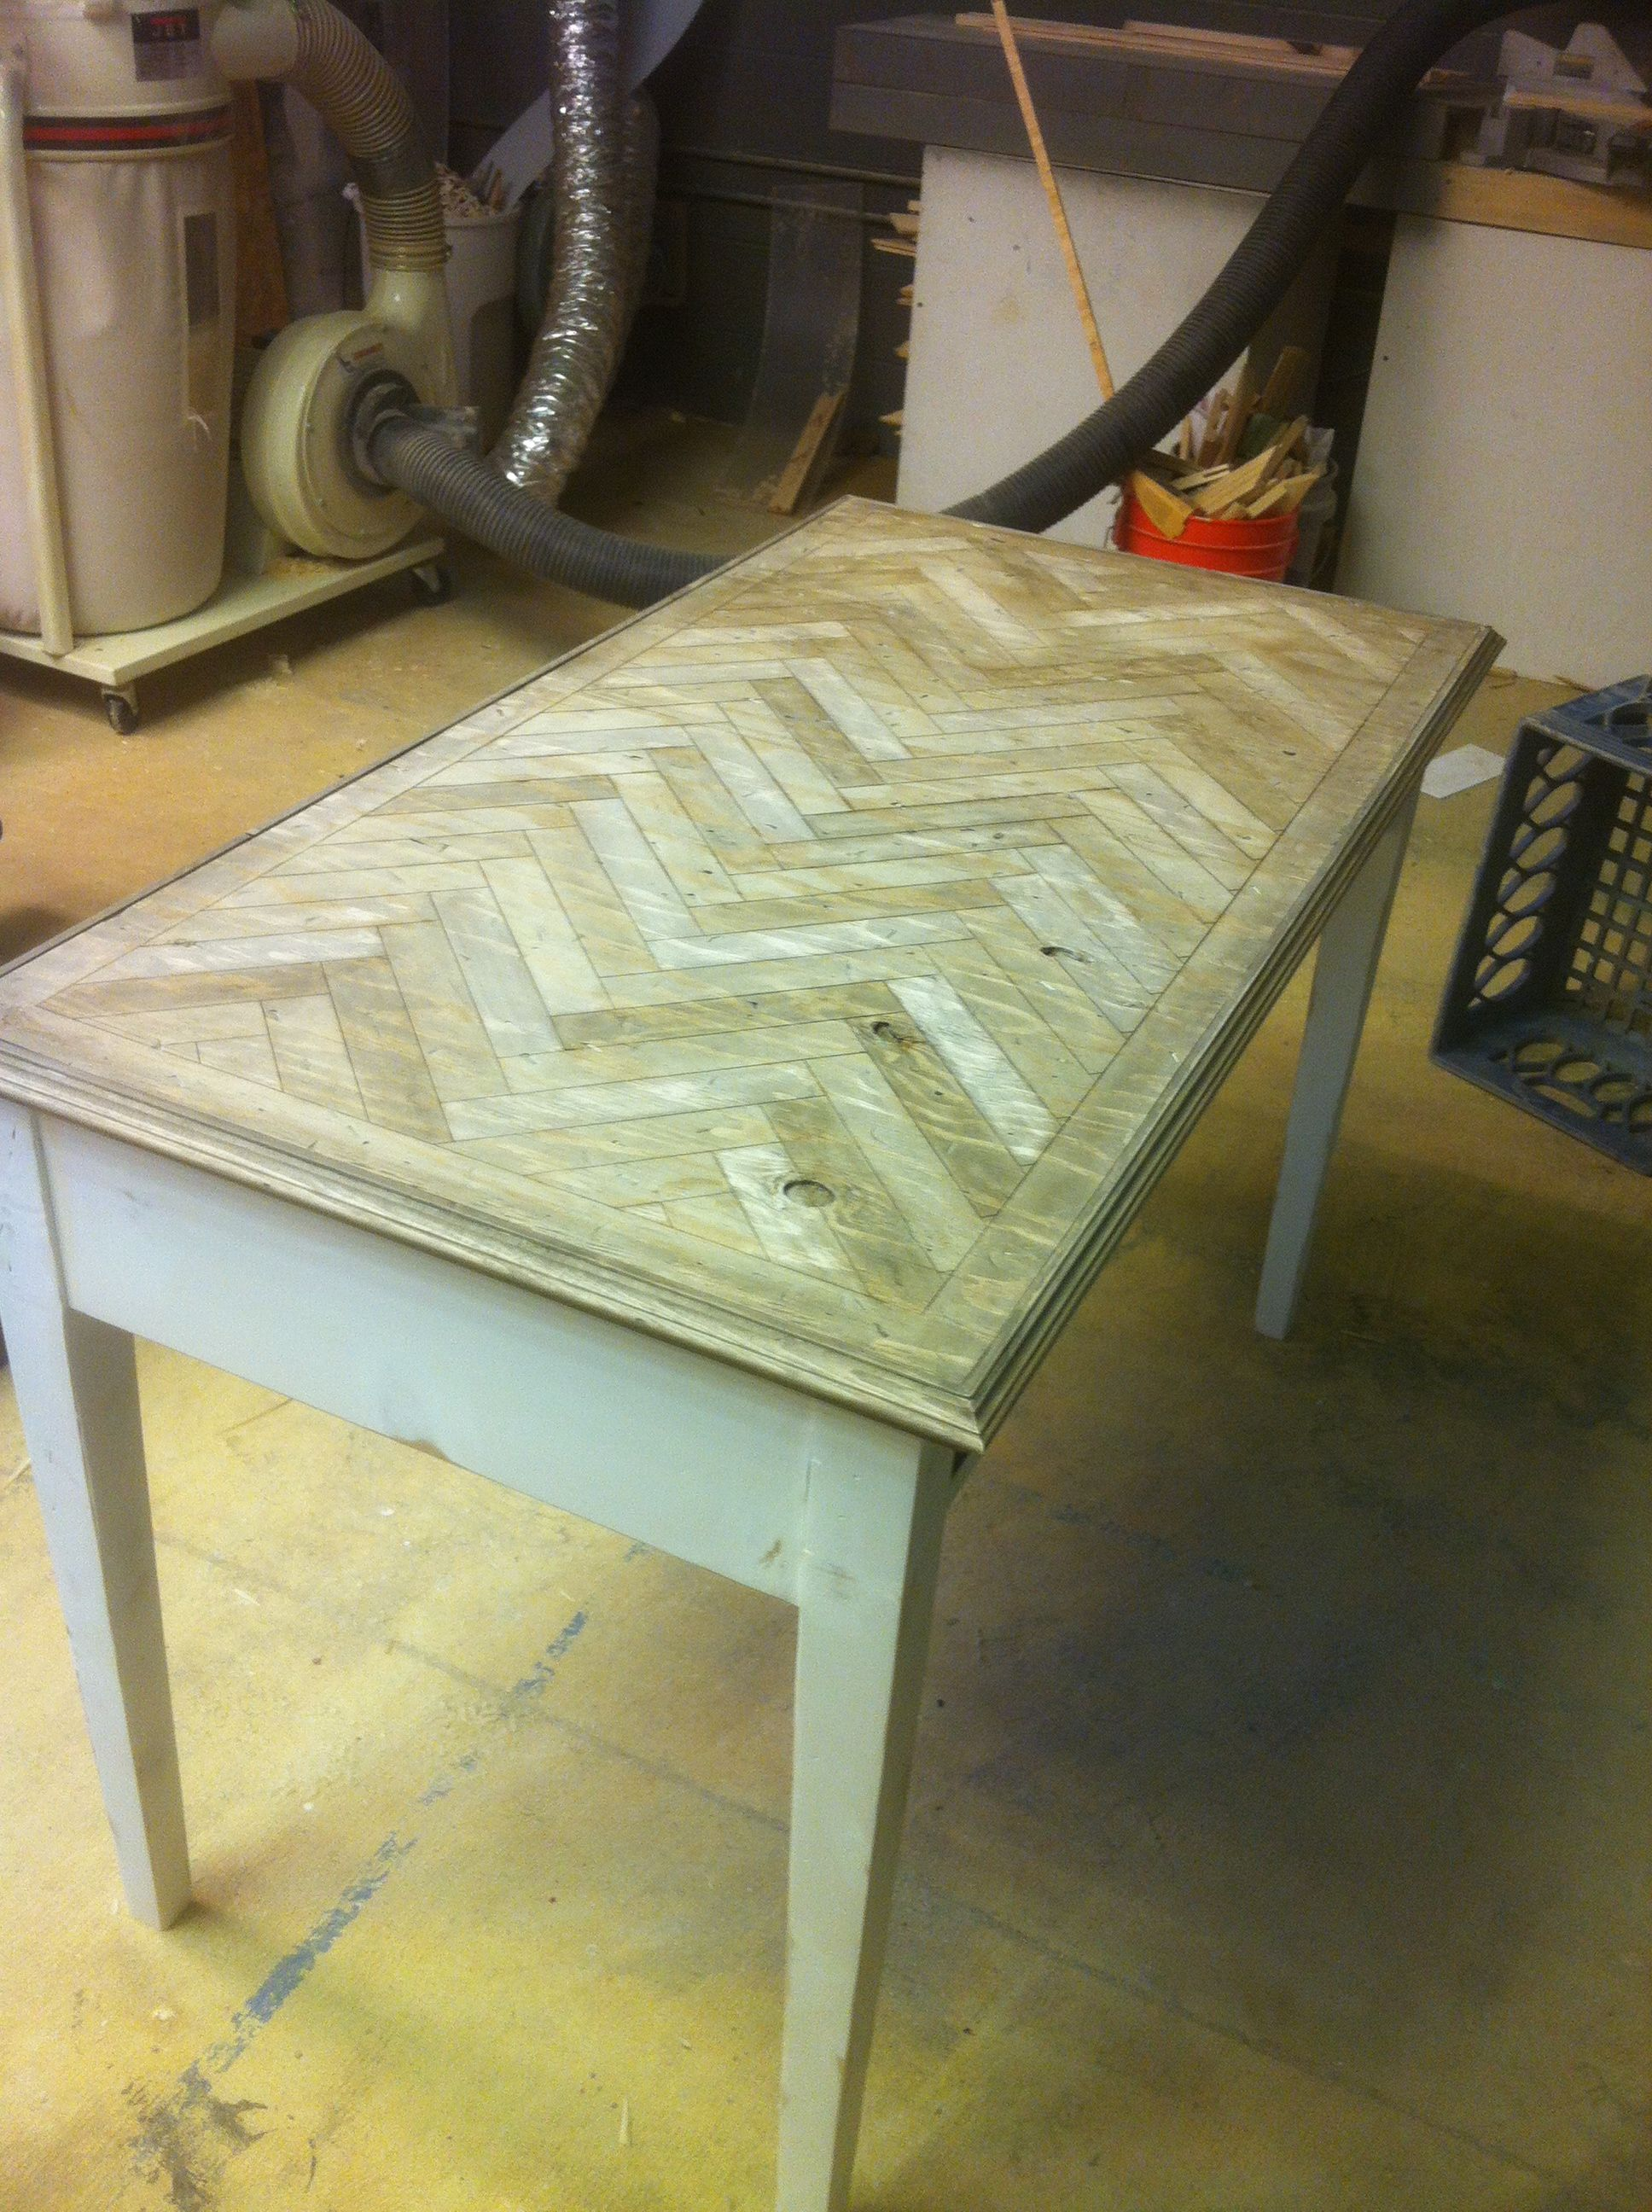 Just finished this desk redo.  The top harringbone pattern was created in our shop with our laser cutter.